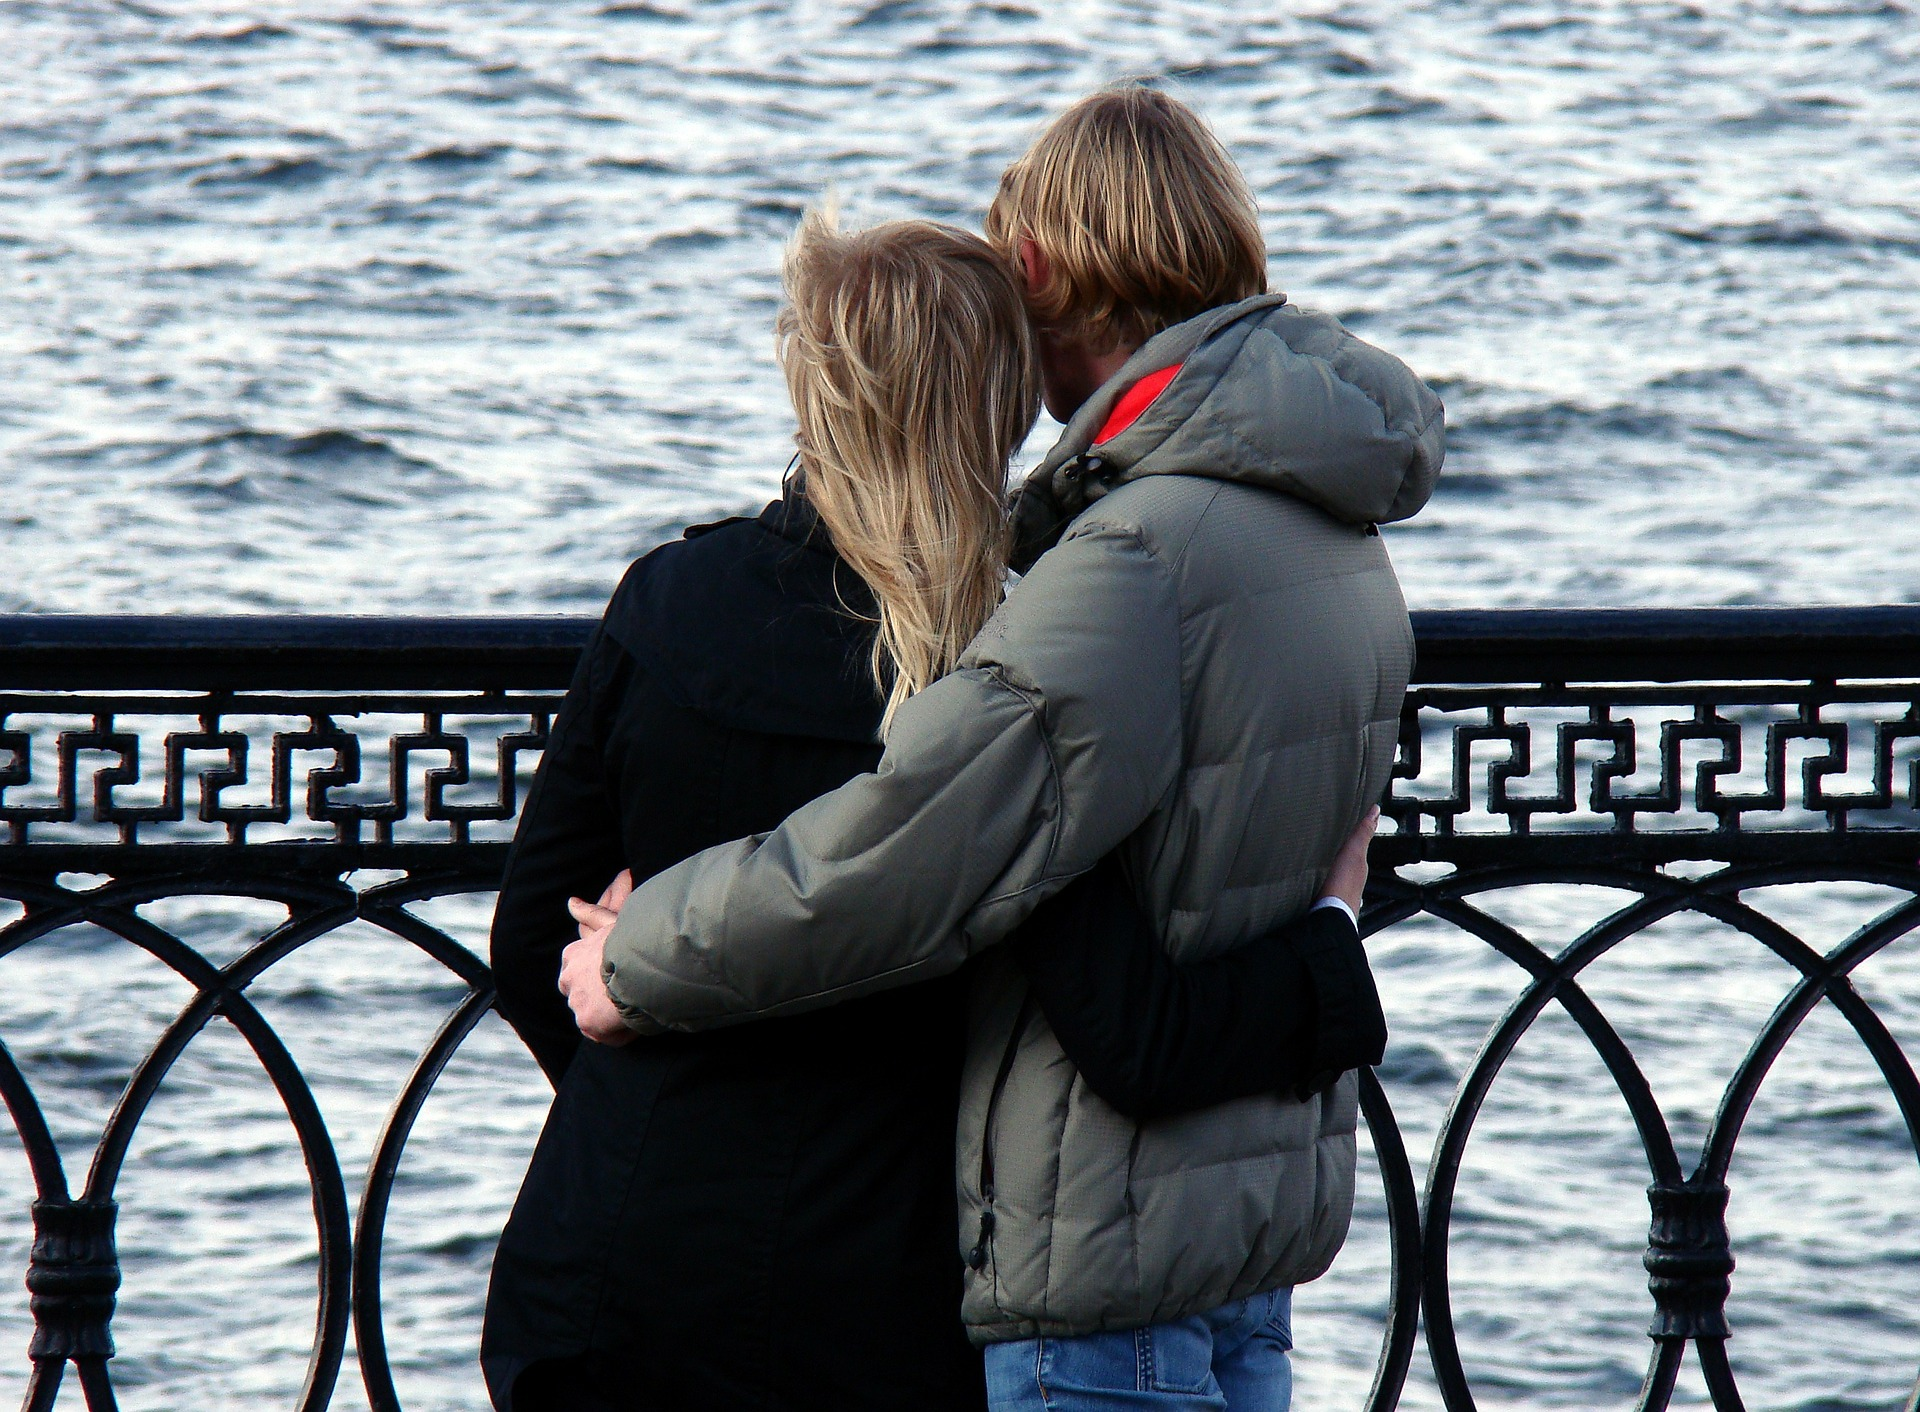 Couple on the boardwalk